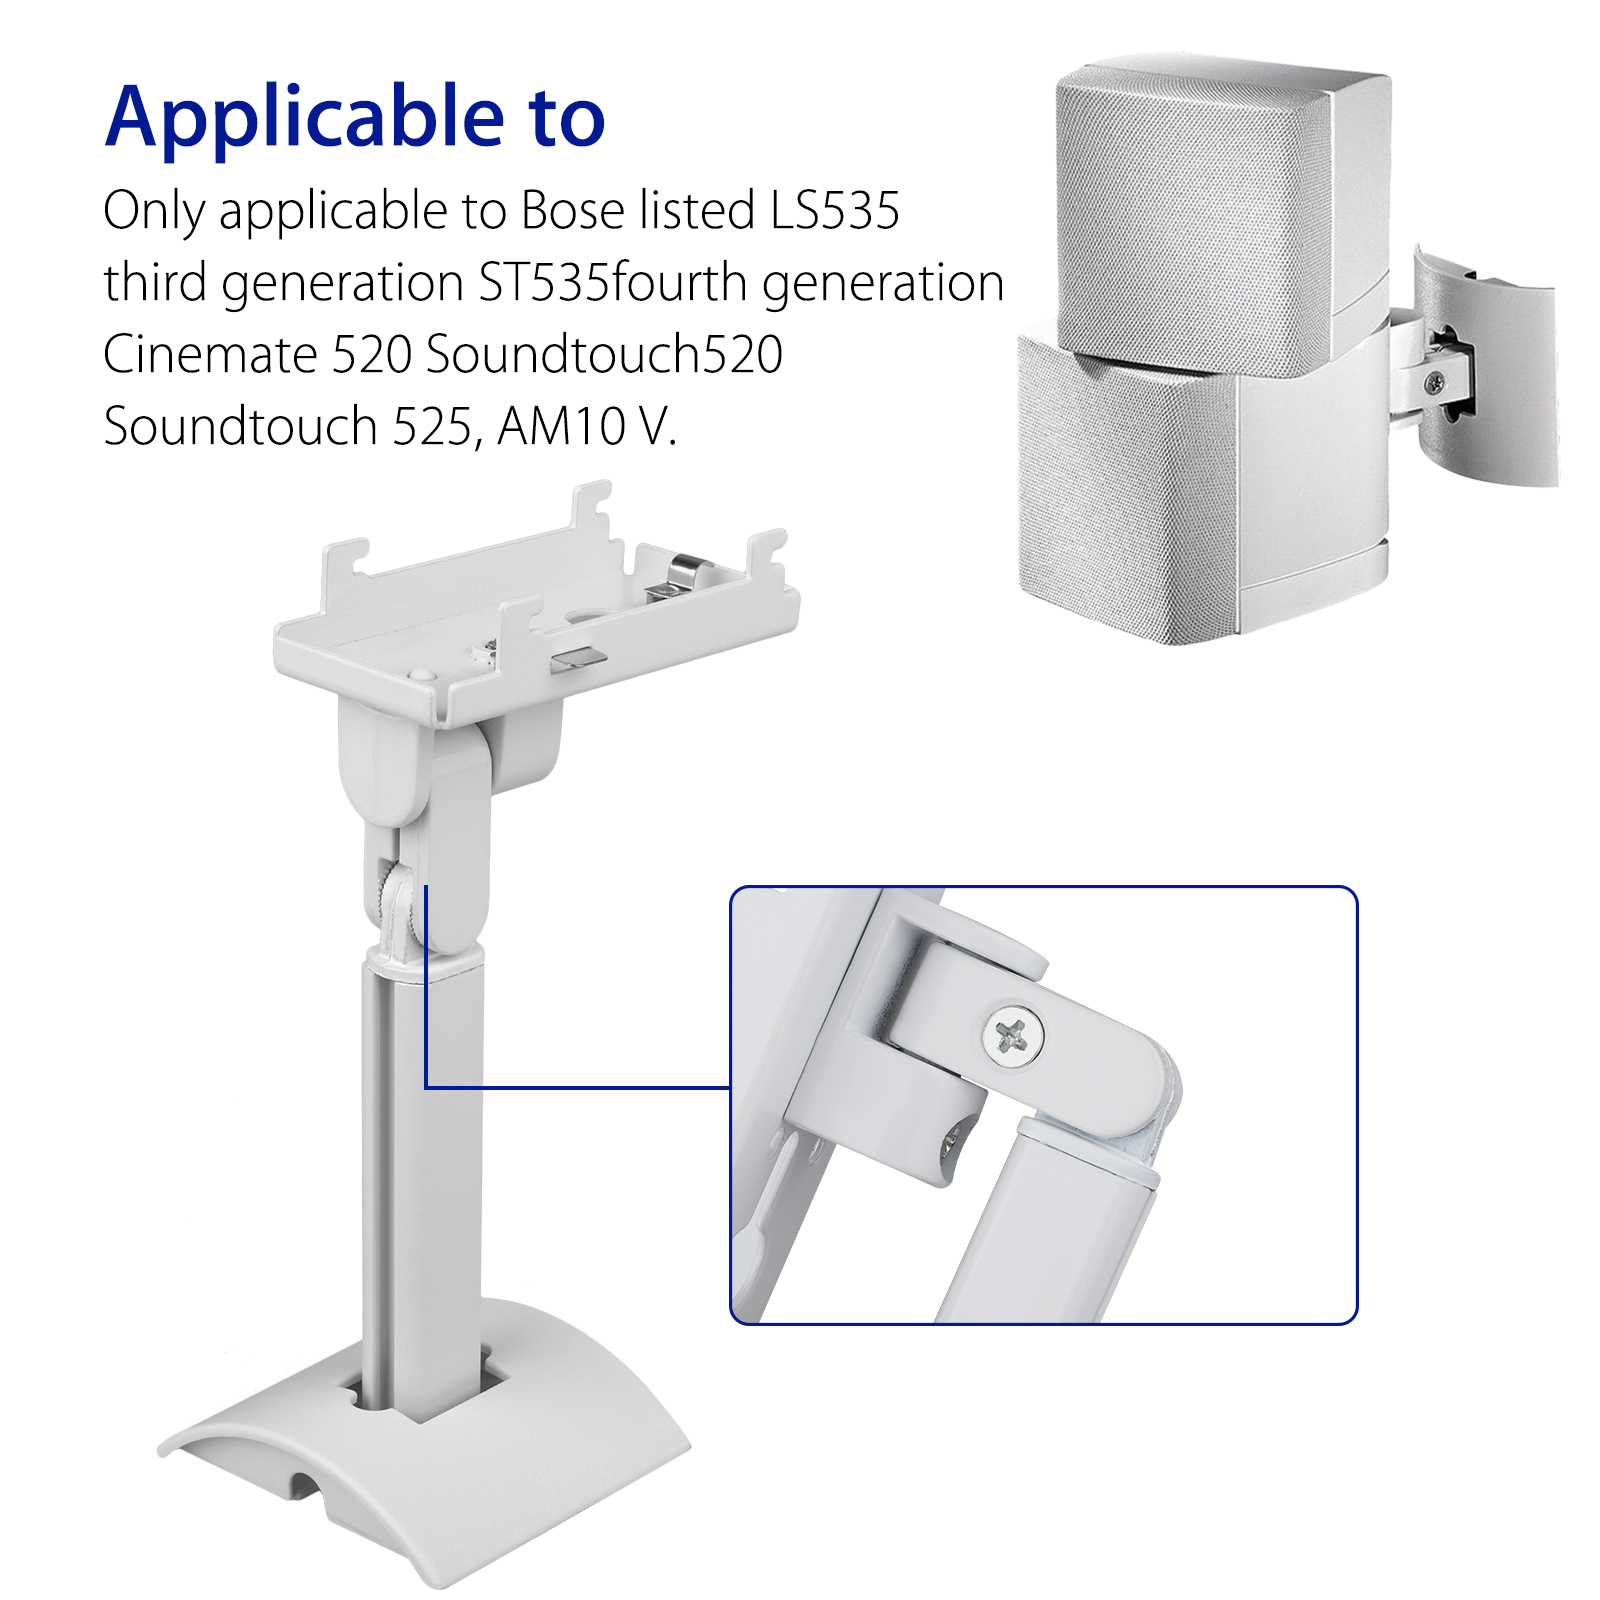 UB20-SERIES2-II-Wall-Ceiling-Bracket-Mount-for-Bose-all-Lifestyle-CineMate-White thumbnail 2